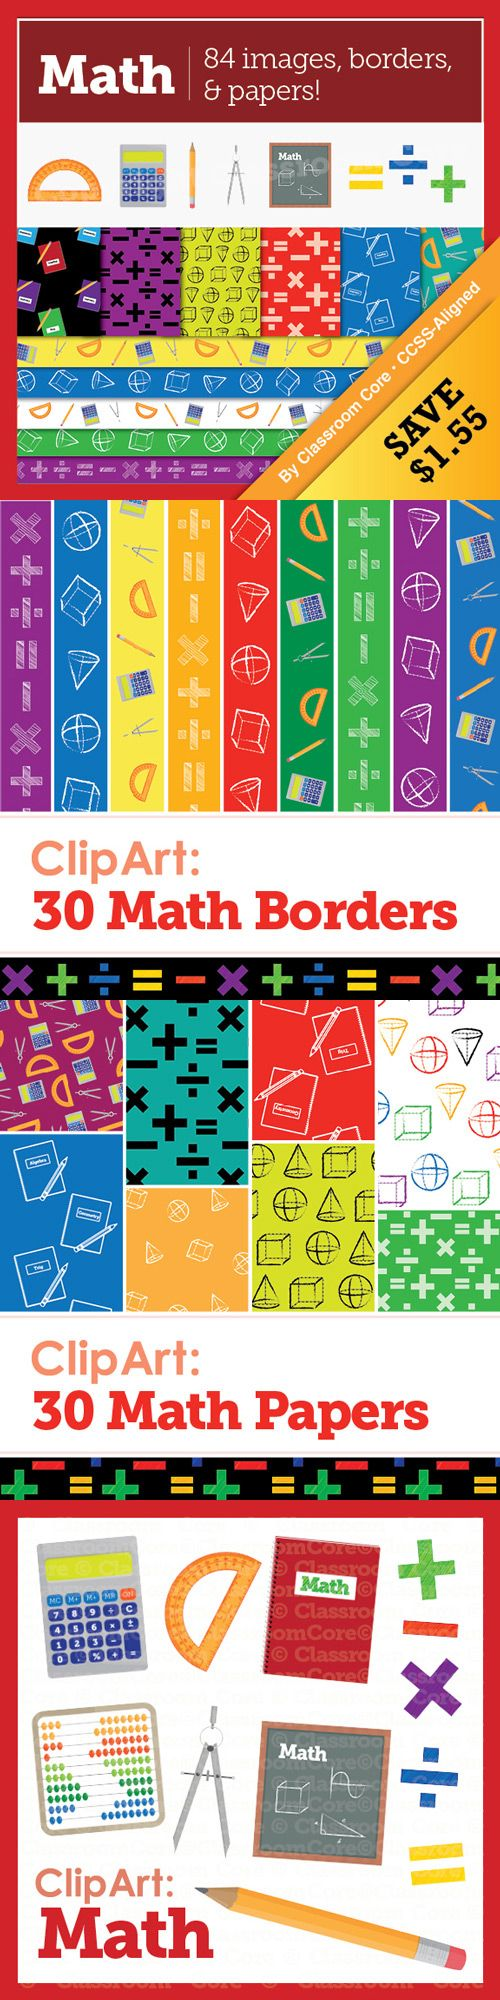 Save 20% when you purchase our math clip art bundle! This set includes our Math Images, Basic Operations, Shapes, & Tools; 30 Math Borders; and 30 Math Papers. 84 files in all--check out Classroom Core's store for more details!